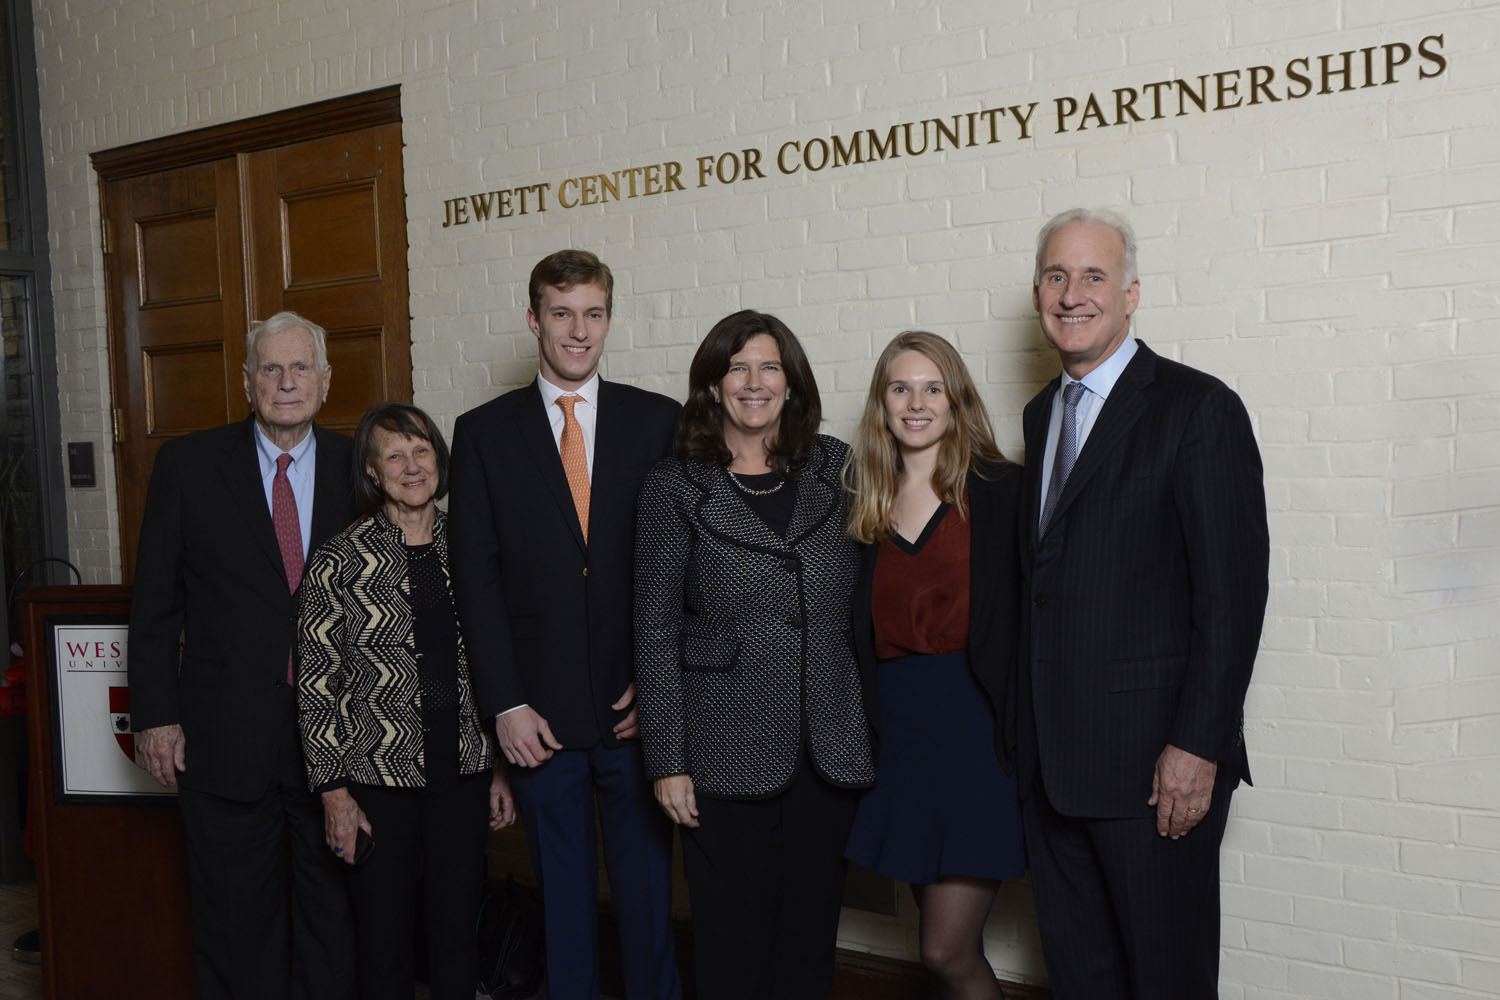 Ellen Jewett (fourth from left) with Corson Ellis, Constance Ellis, Ezra Kauffman '17, Hannah Kauffman and Richard Kauffman.